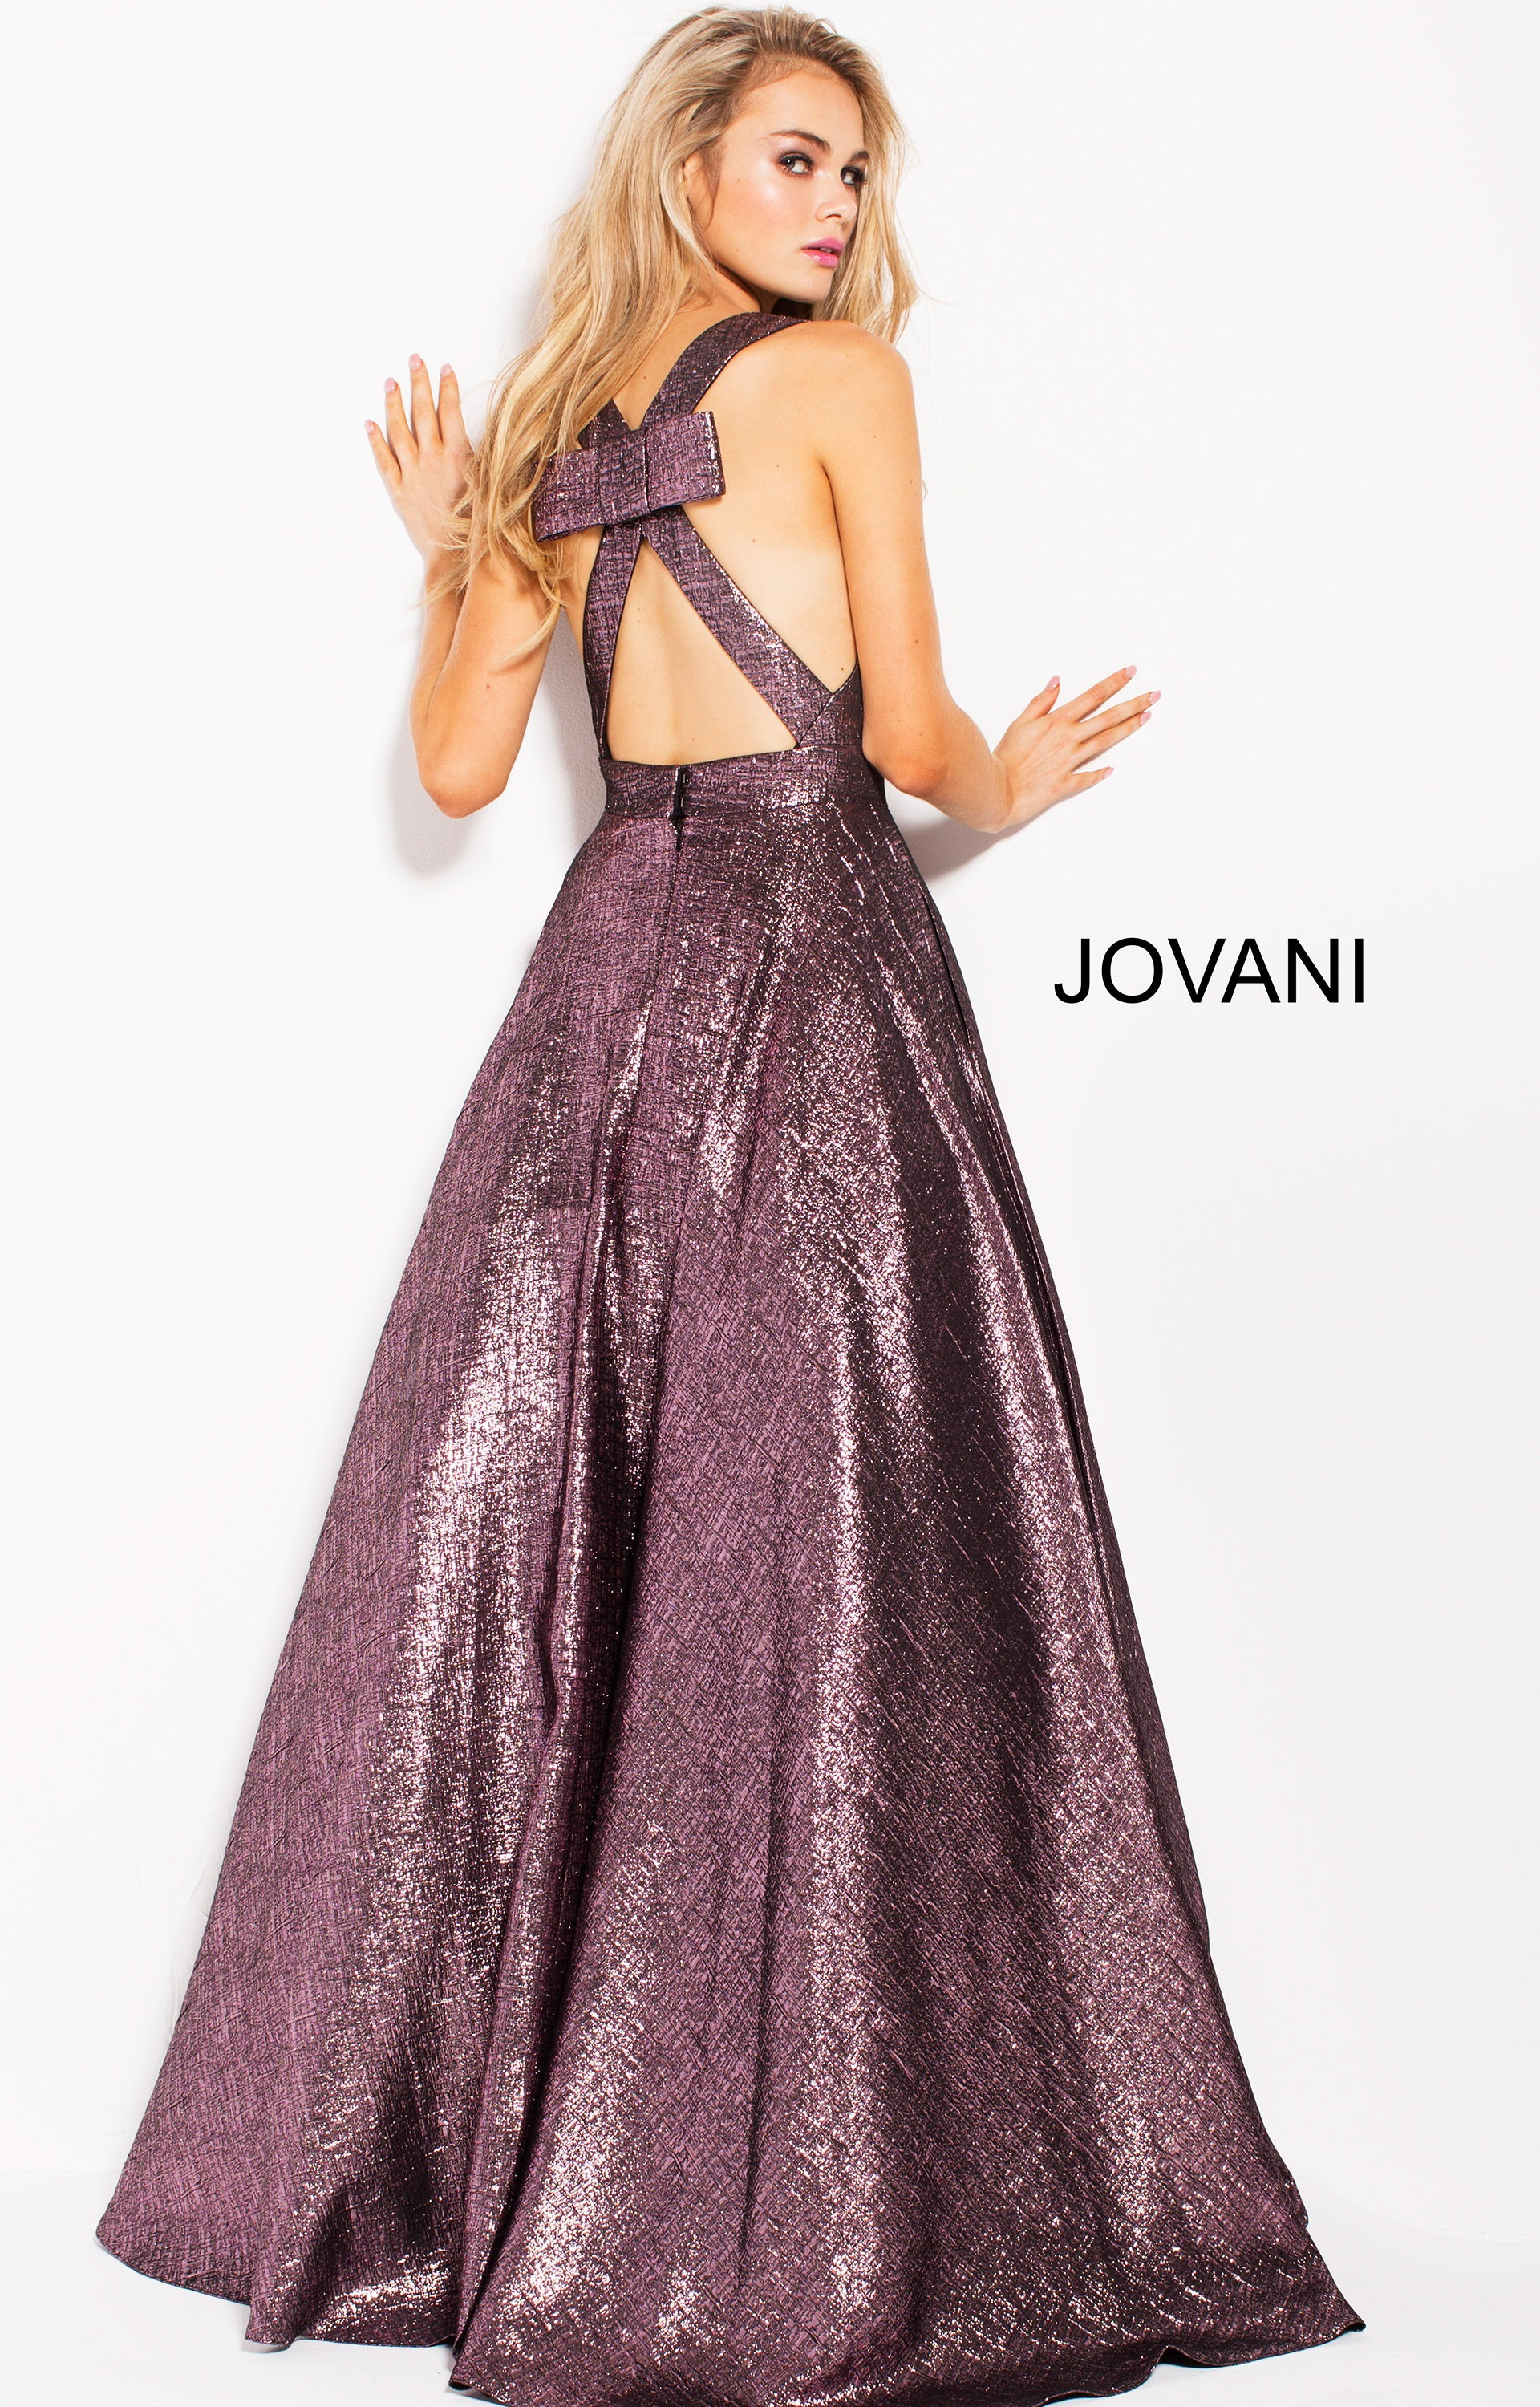 Jovani 59210 Deep V Neckline Open Back Ball Gown Dress